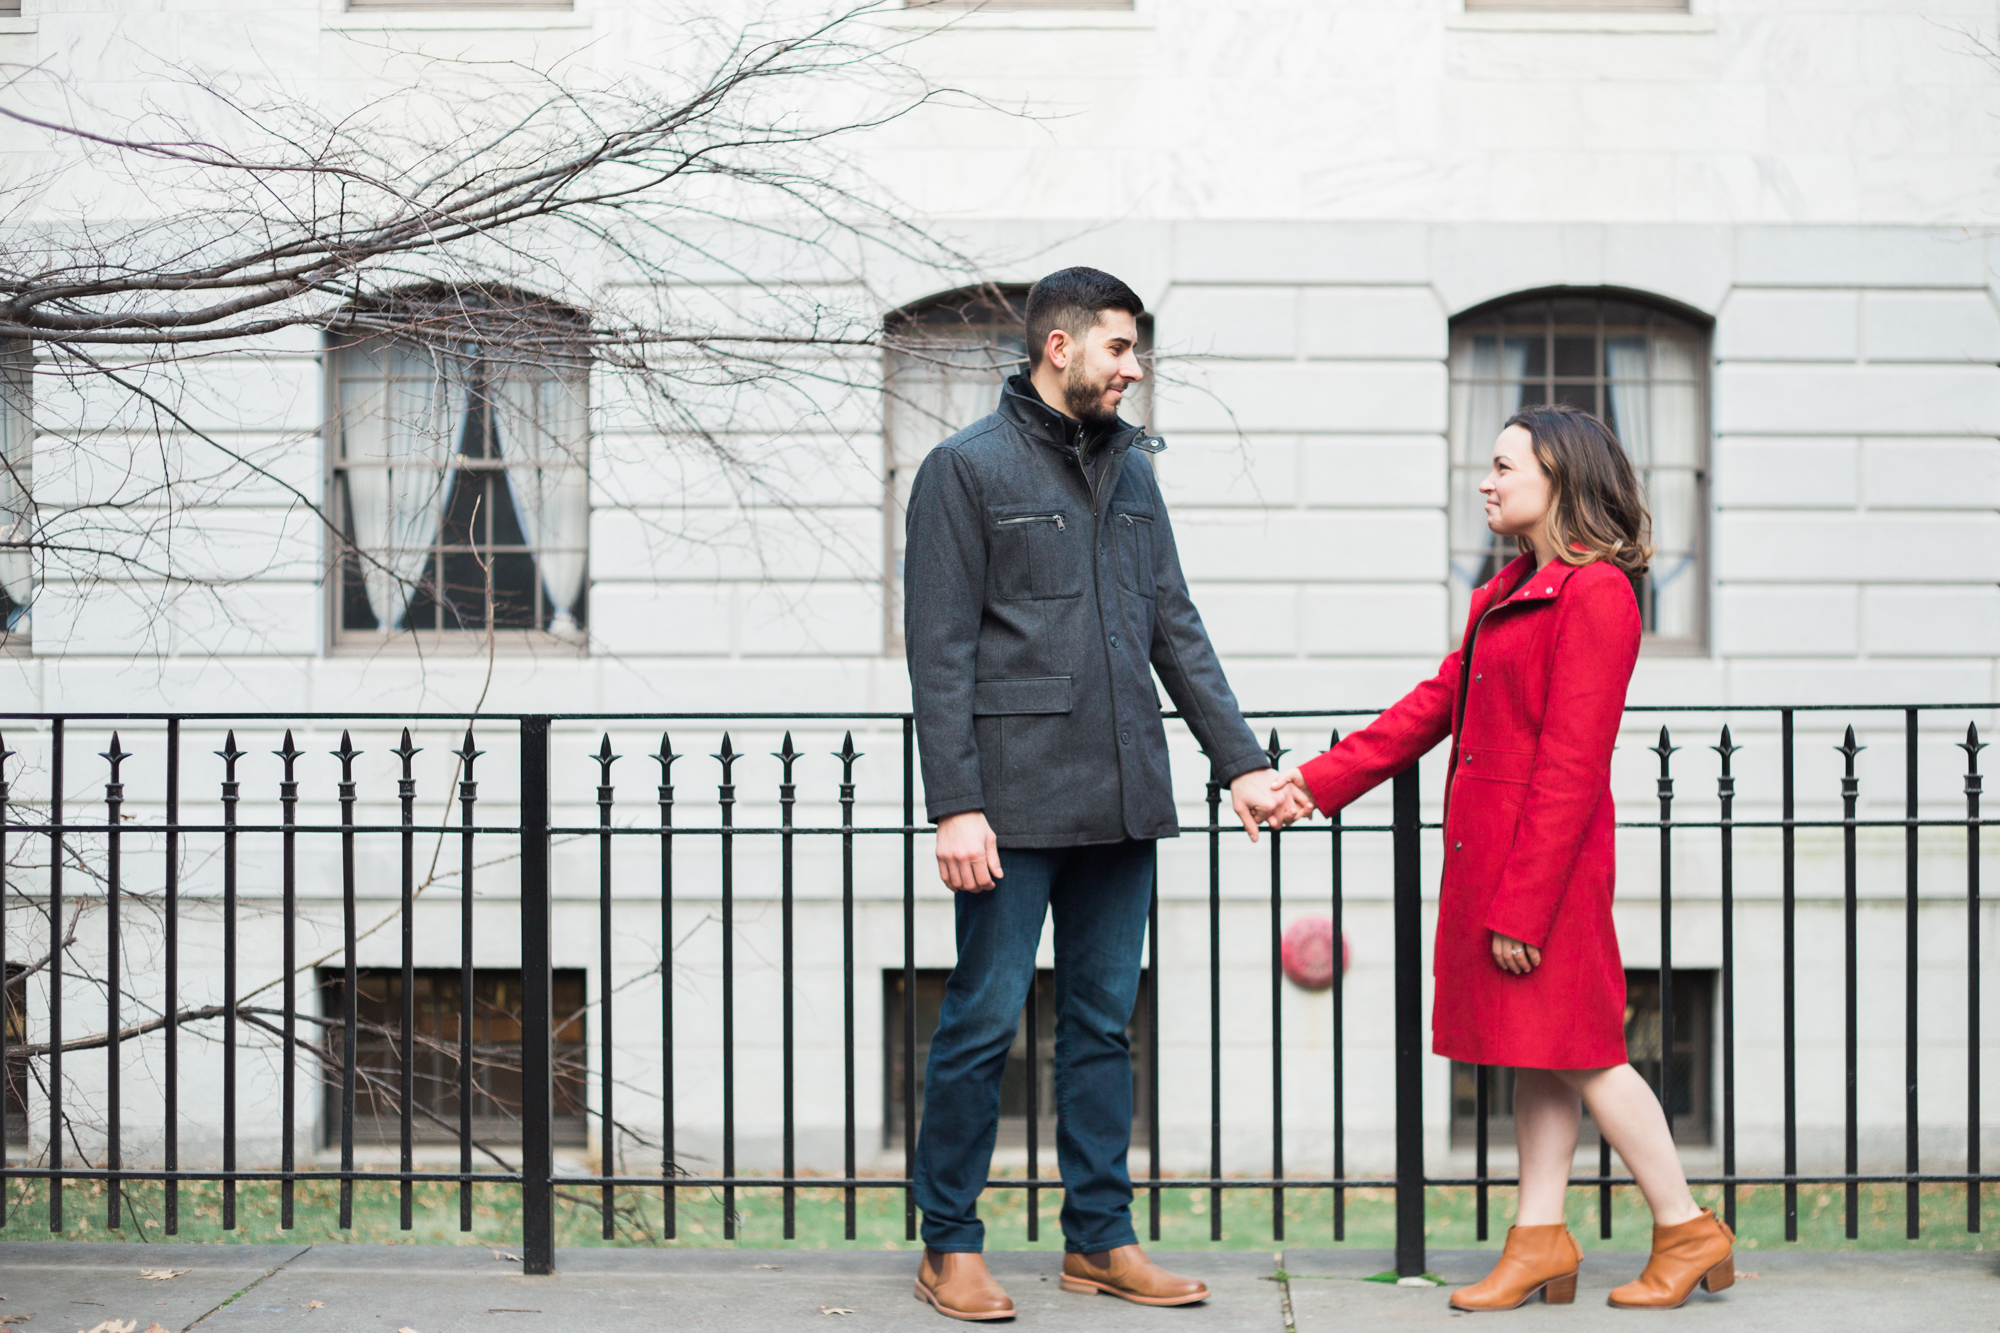 Click here to see more from this wintery Beacon Hill engagement session.